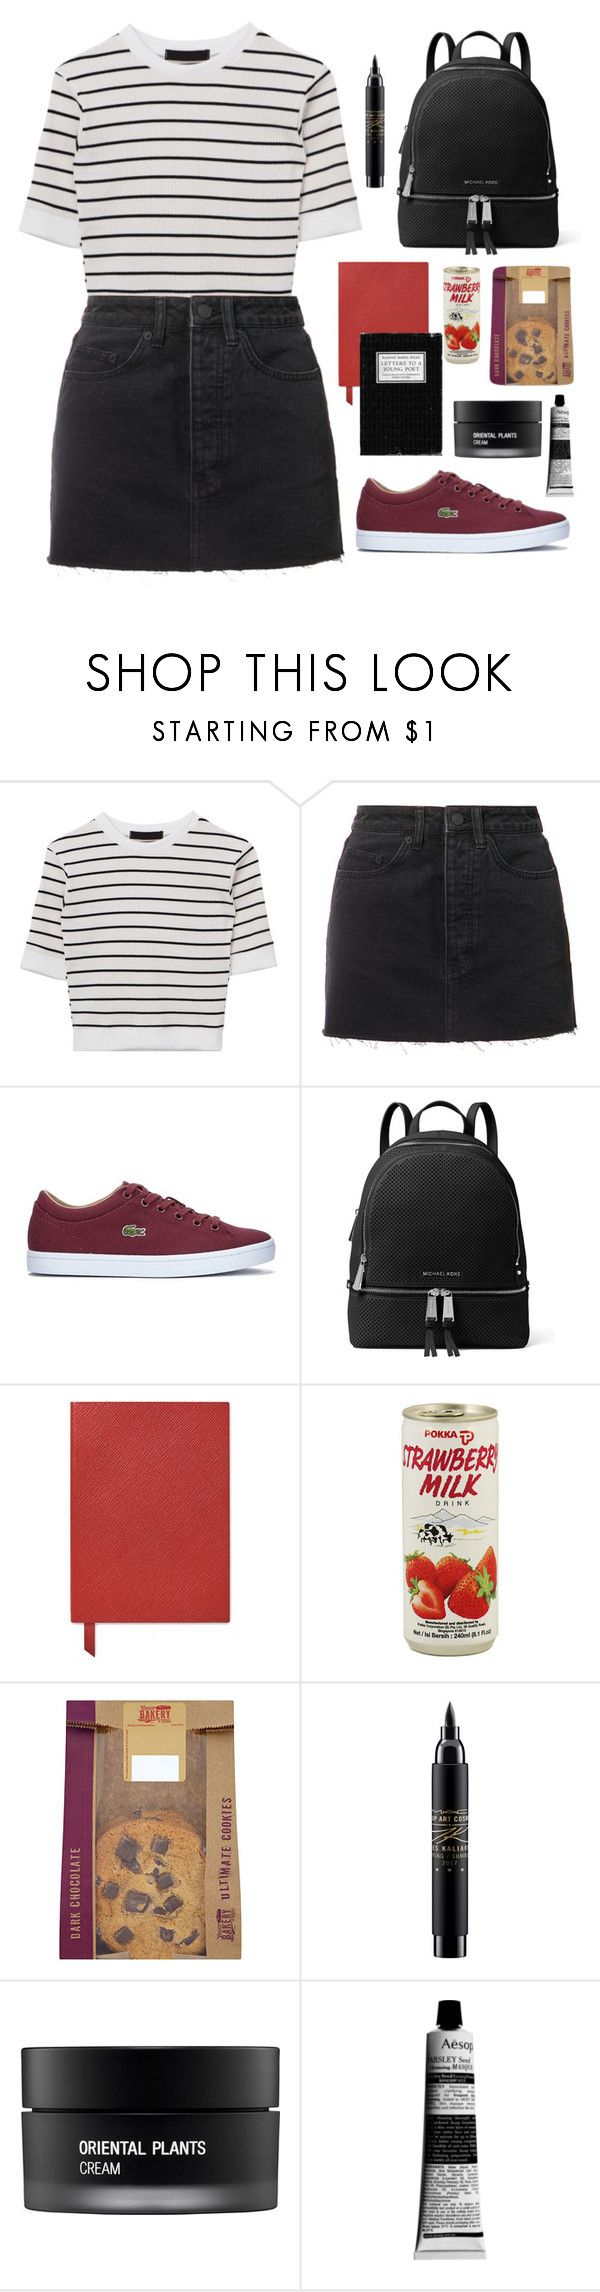 """F I R S T D A Y O F S H O O L"" by rubiasol ❤ liked on Polyvore featuring Ksubi, Lacoste, MICHAEL Michael Kors, Smythson, MAC Cosmetics, Koh Gen Do and Aesop"